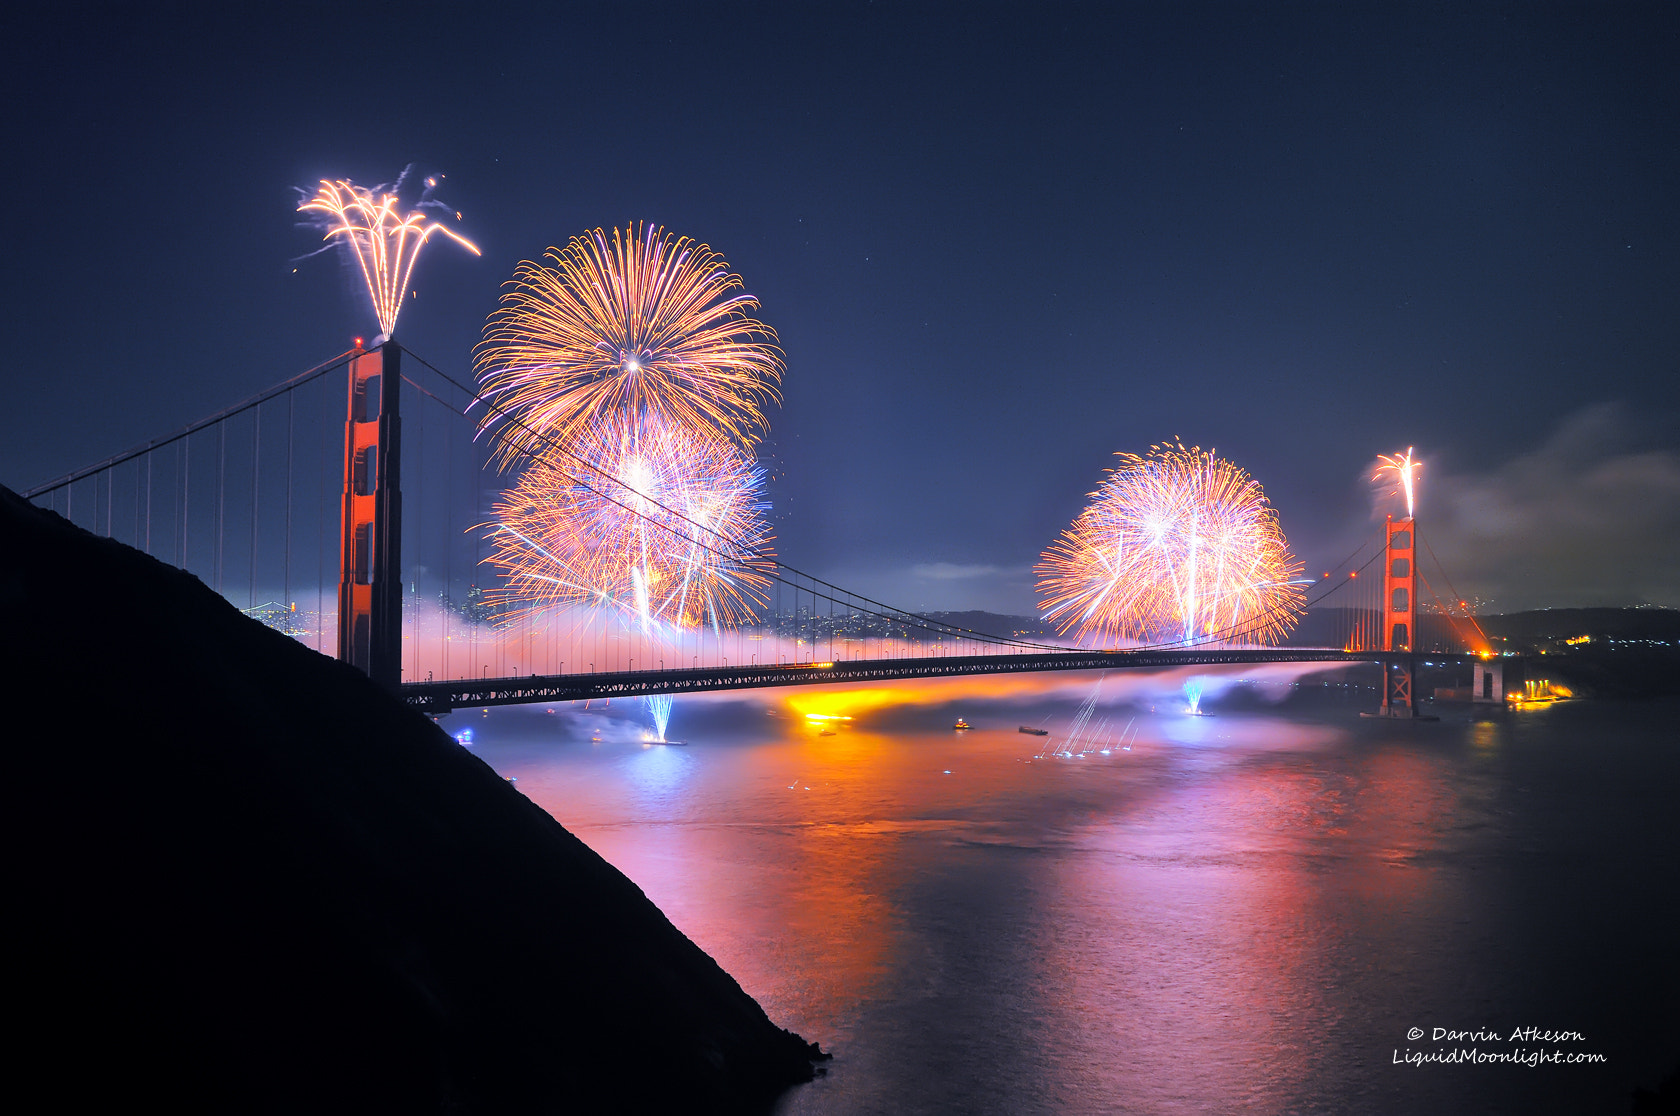 Photograph 75th Anniversary Fireworks - Golden Gate Brige by Darvin Atkeson on 500px